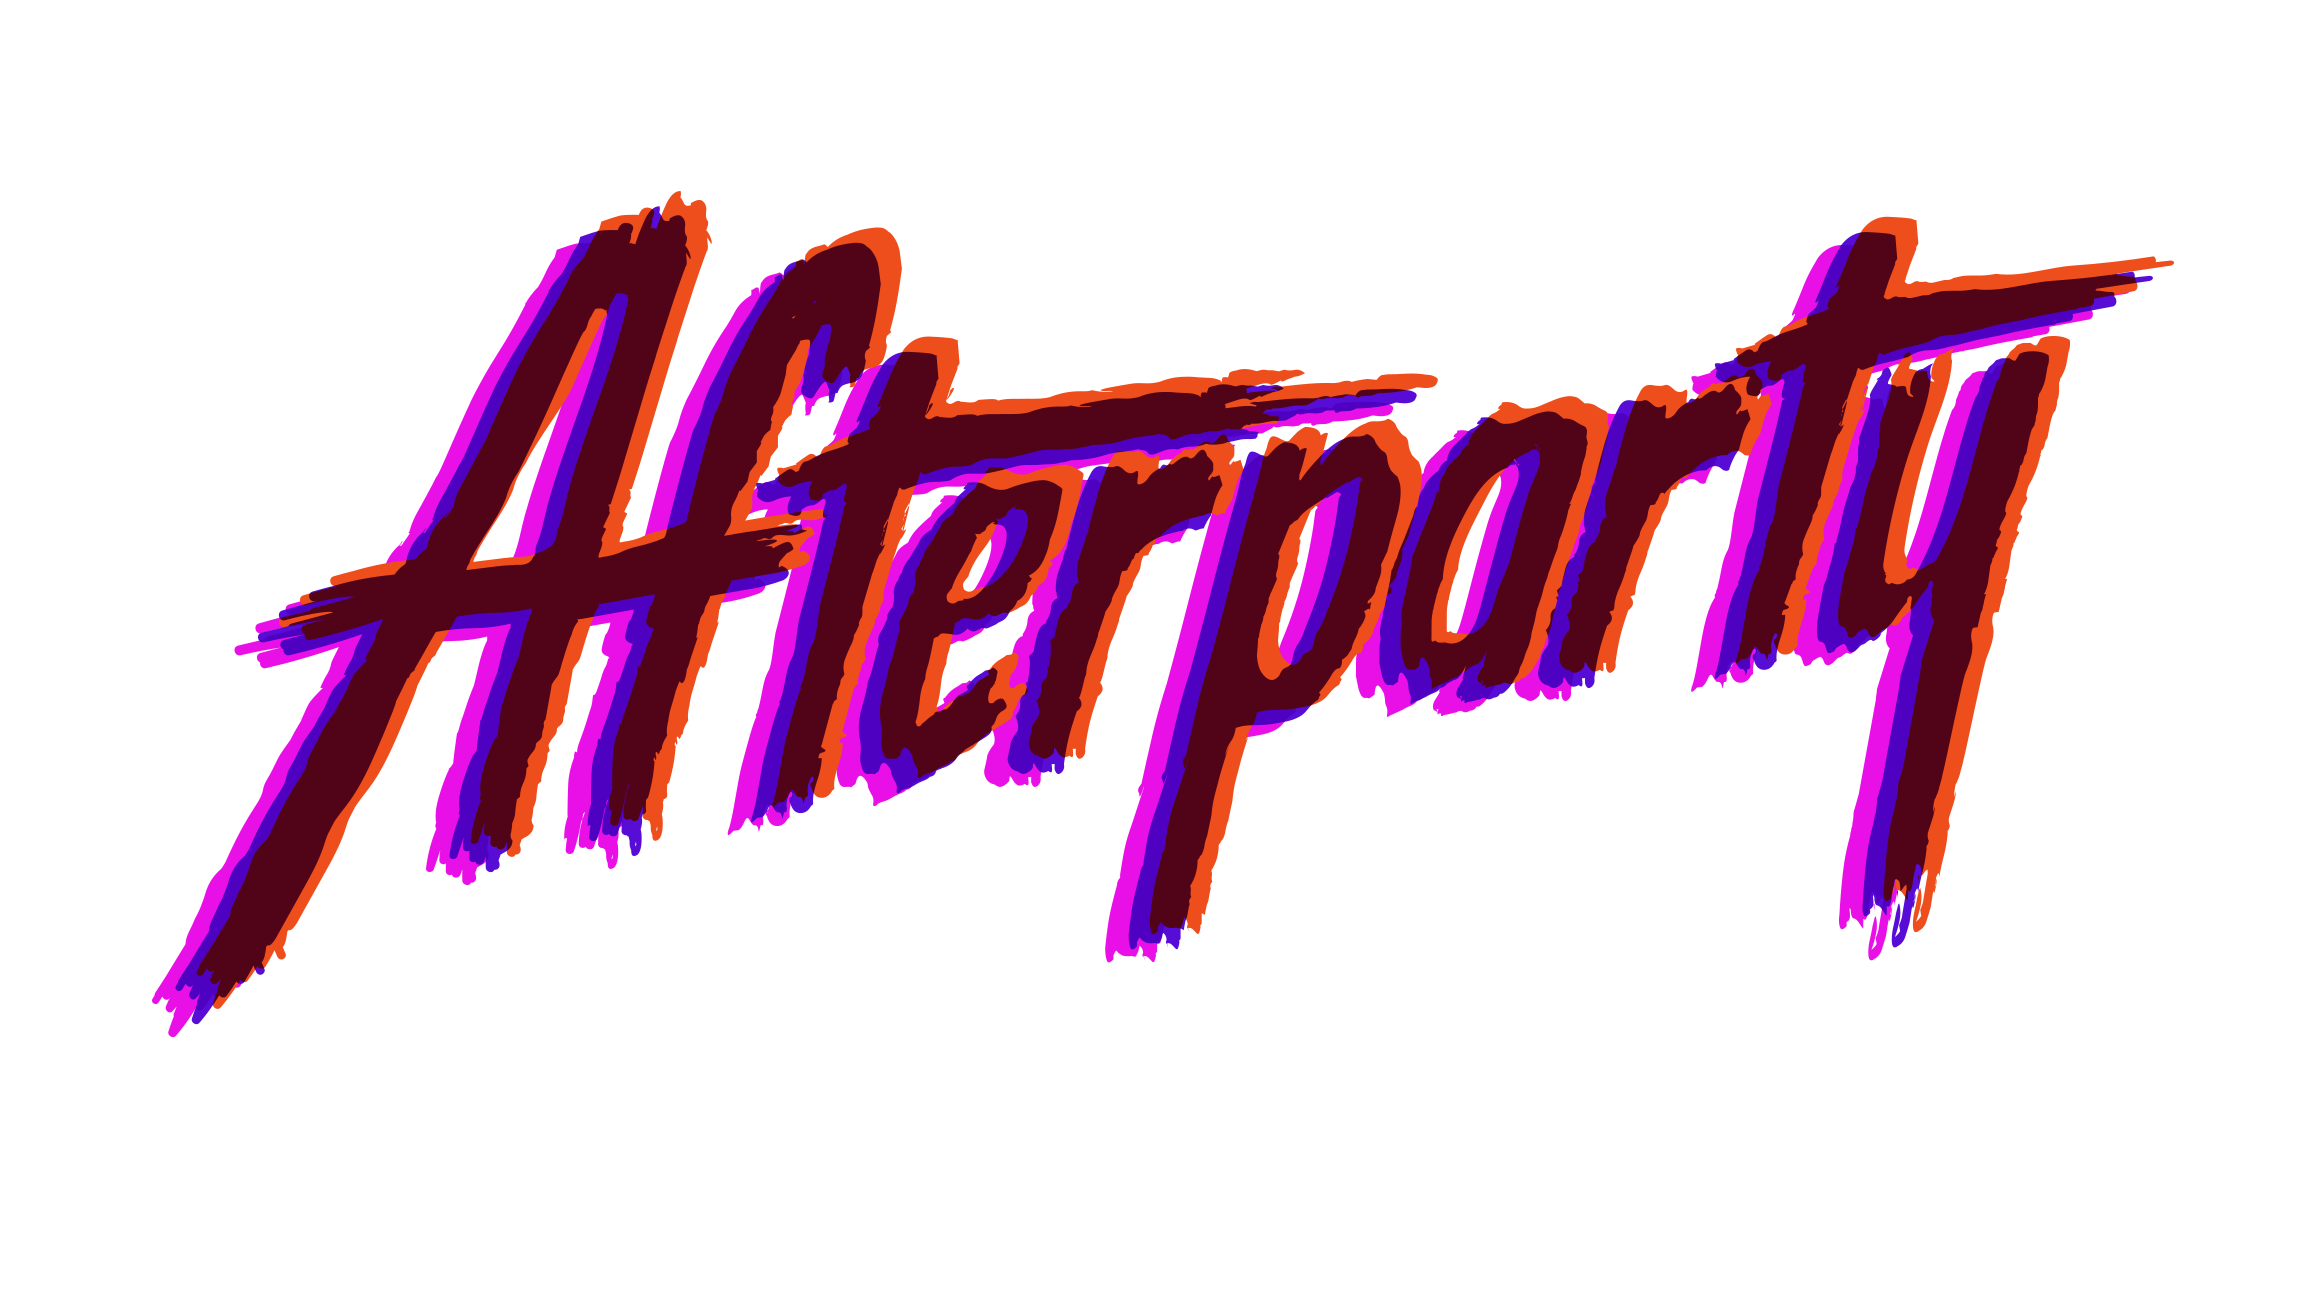 Afterparty - Afterparty Арт